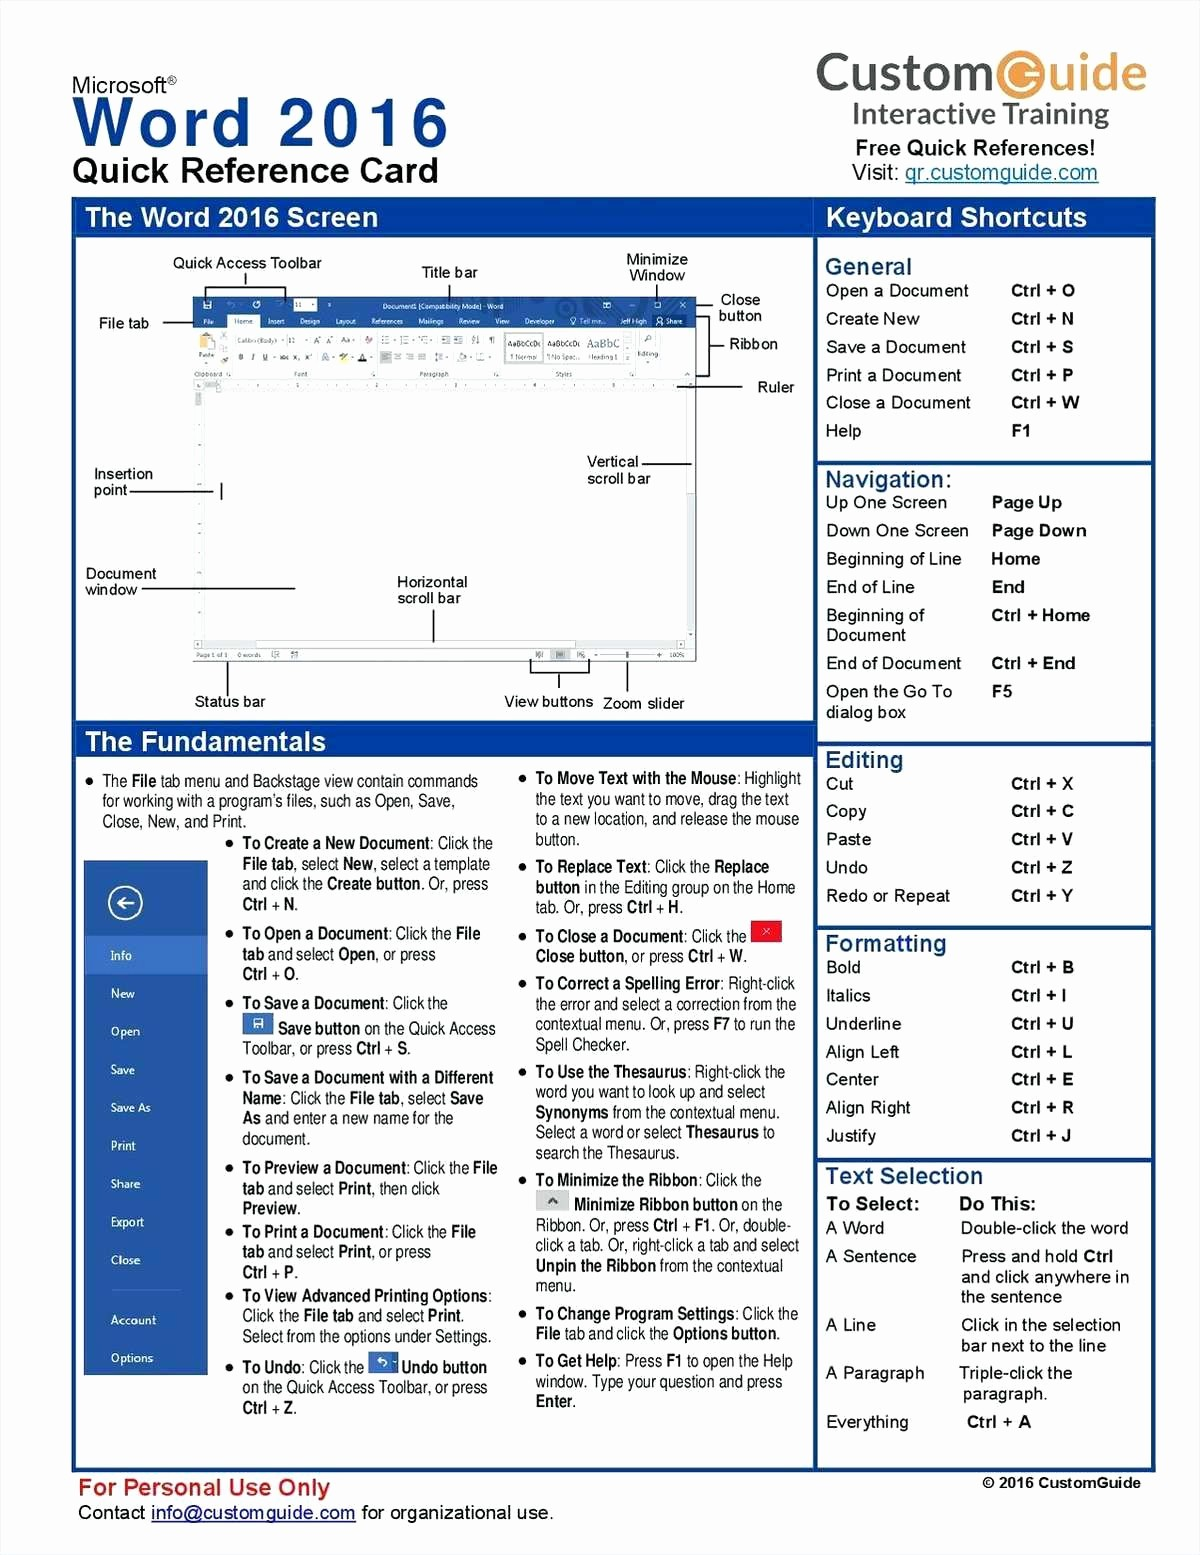 Quick Reference Card Template Word Beautiful Quick Reference Guide Template